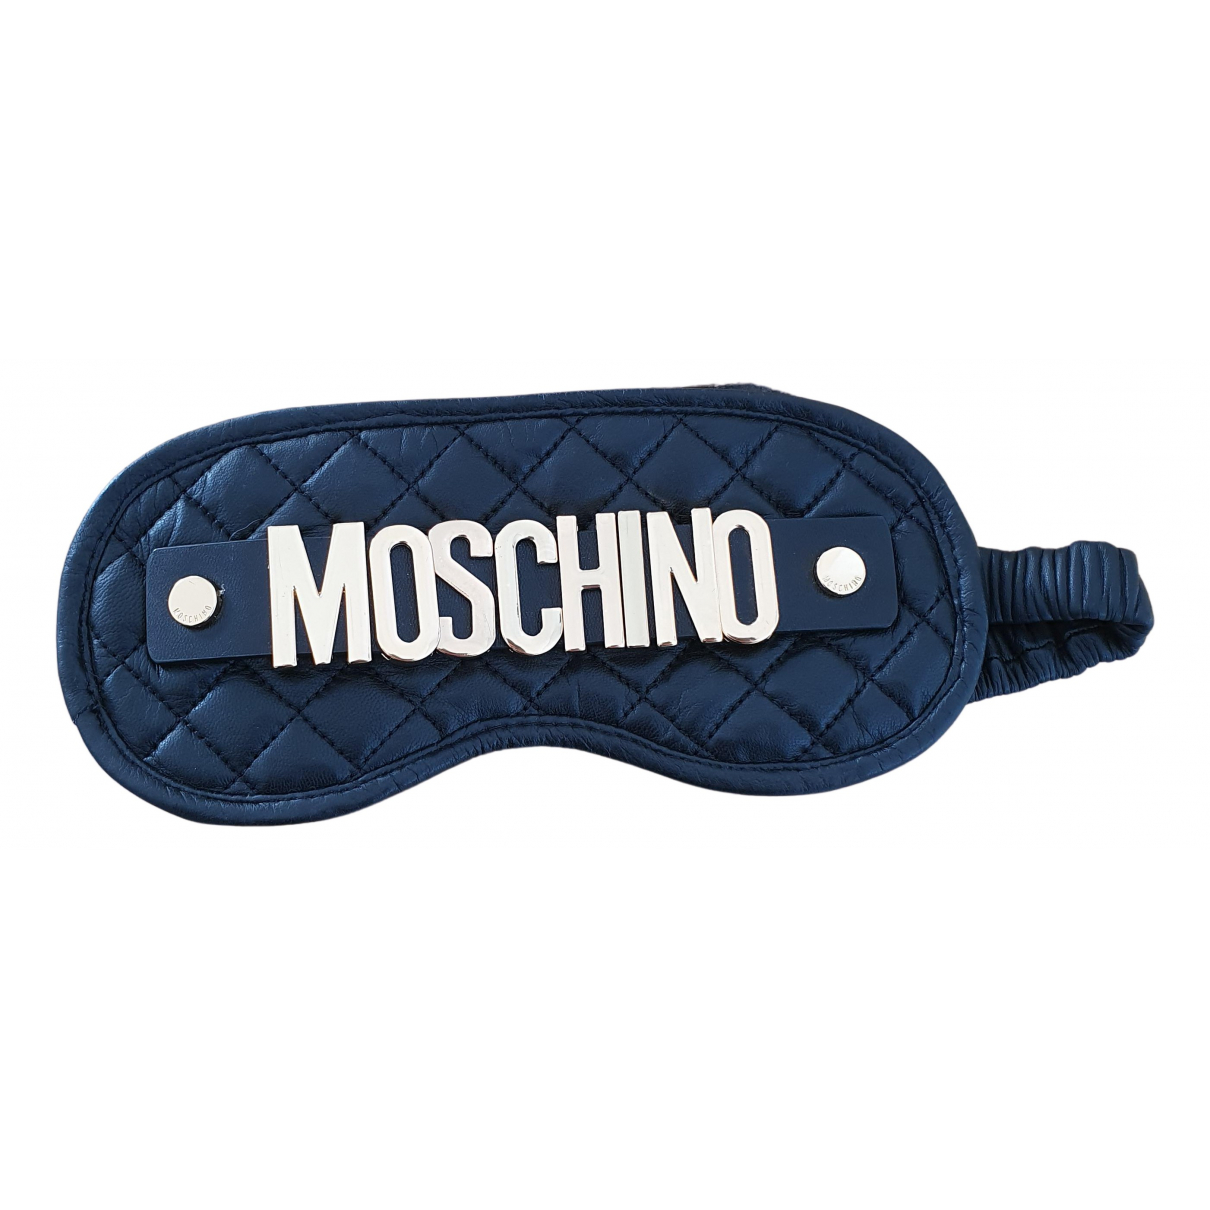 Viajes Moschino For H&m